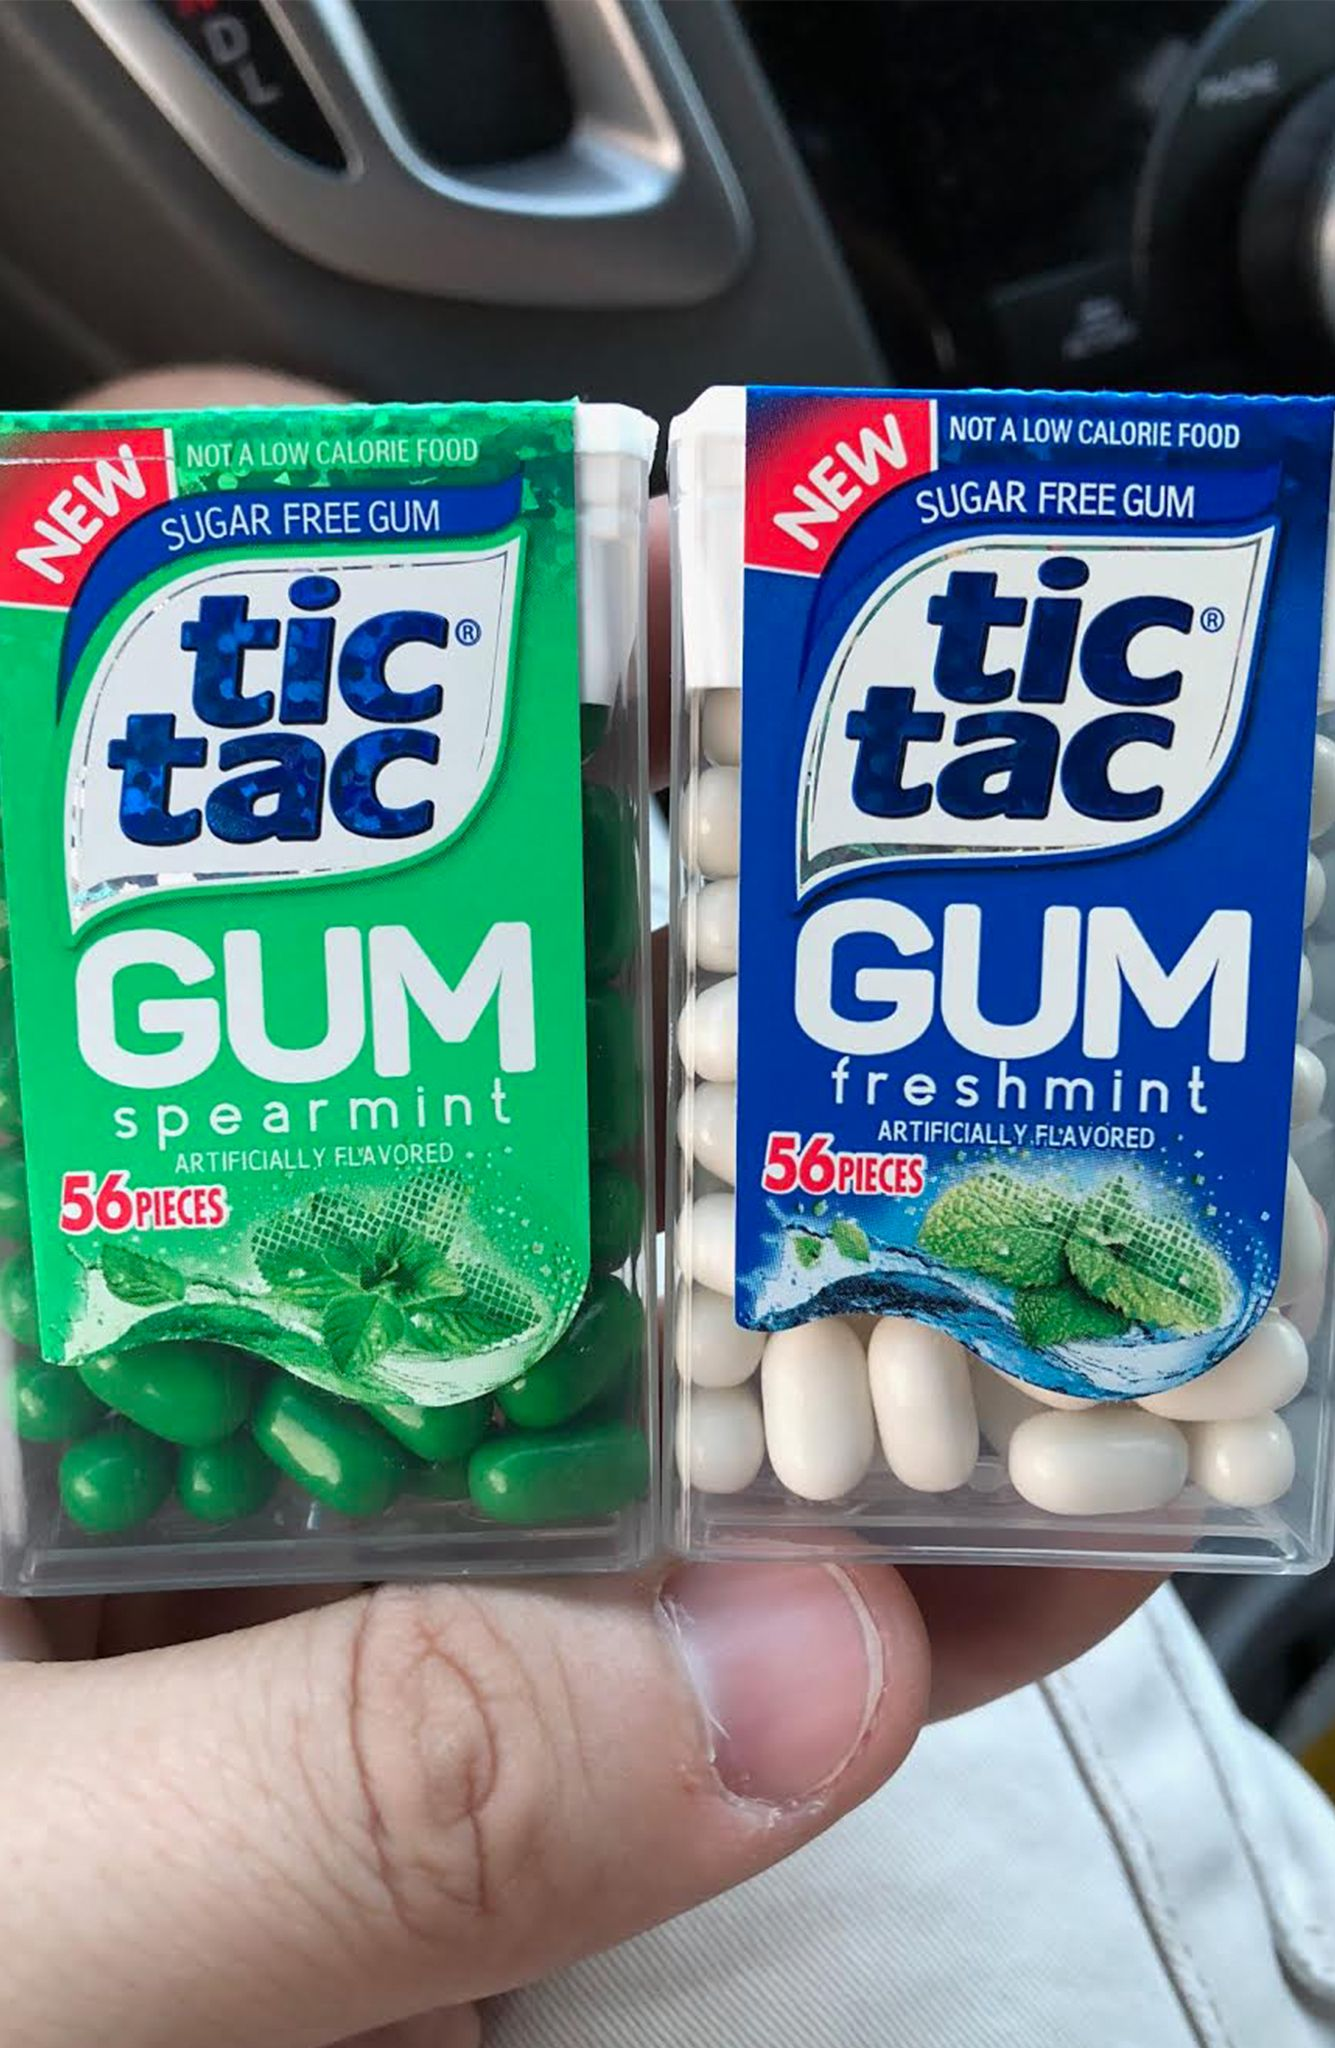 photo relating to Gum Coupons Printable named 🔥Tic Tac Gum 56ct Packs Merely $0.14/Each and every Coupon codes, Freebies